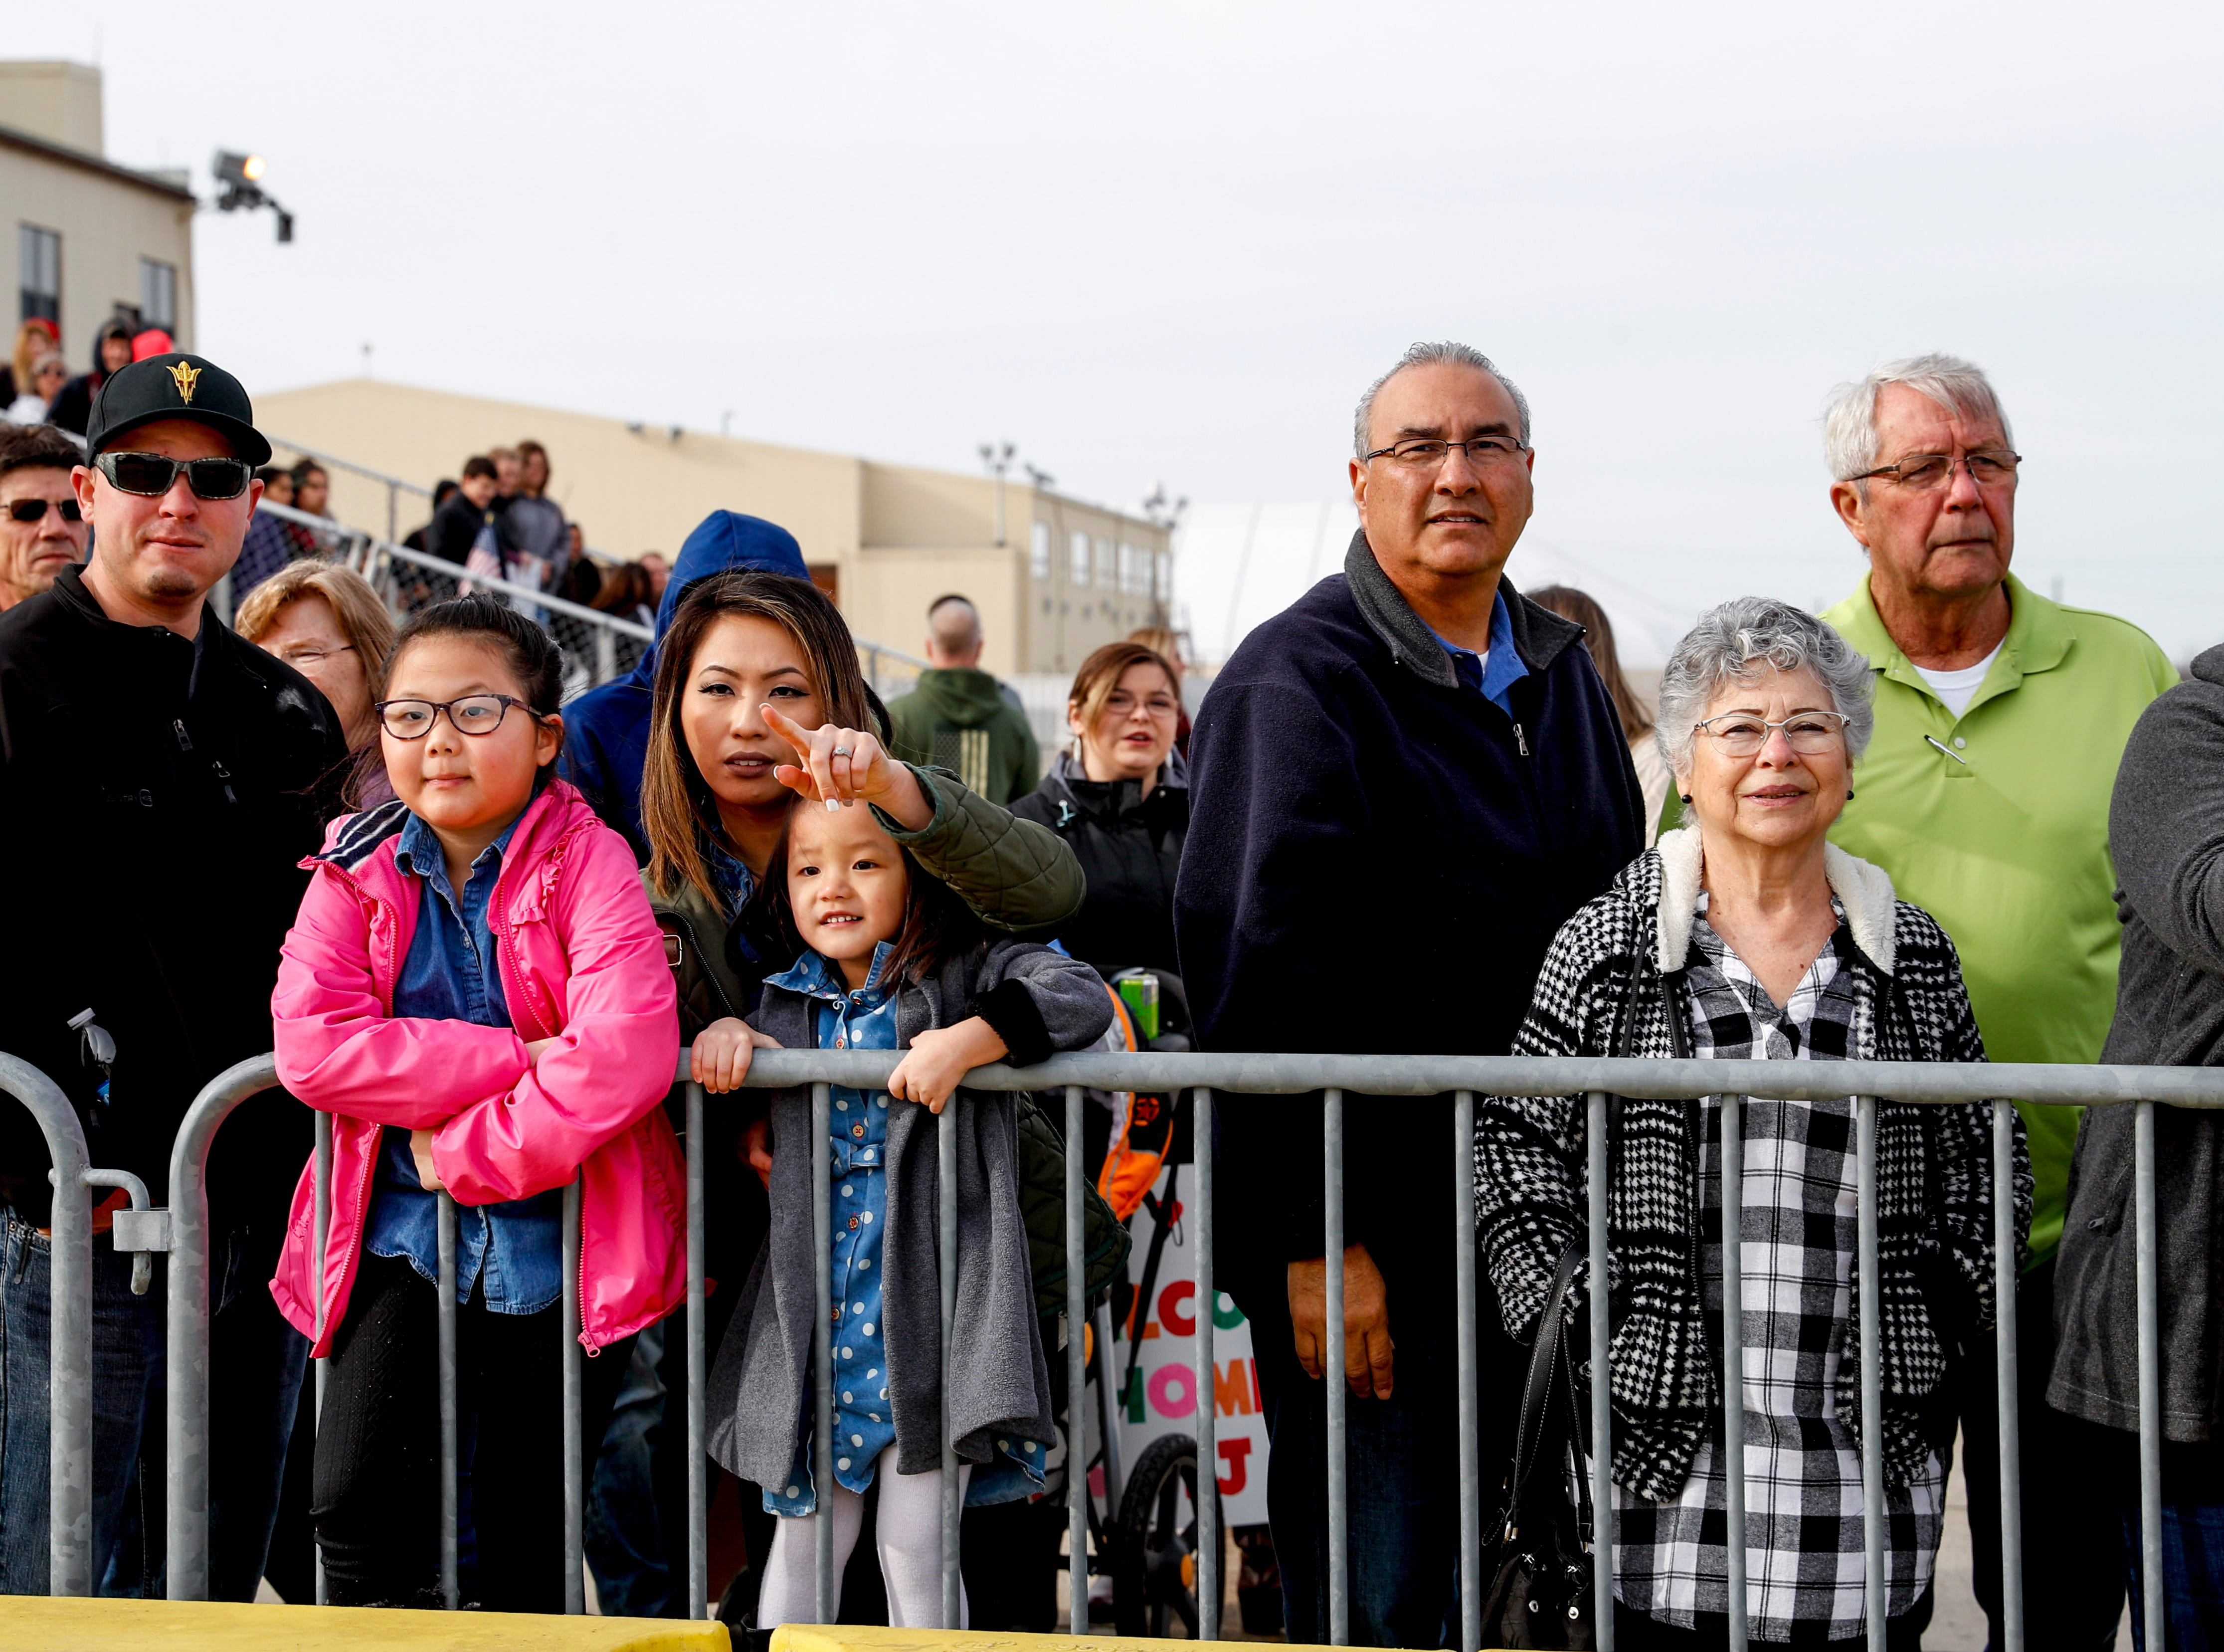 Families point at and watch the approach of an airplane carrying 227 troops coming home from Afghanistan during the return of soldiers from the 101st Combat Aviation Brigade of 101st Airborne Division (Air Assault) at Campbell Army Air Field in Fort Campbell, KY., on Sunday, March 10, 2019.